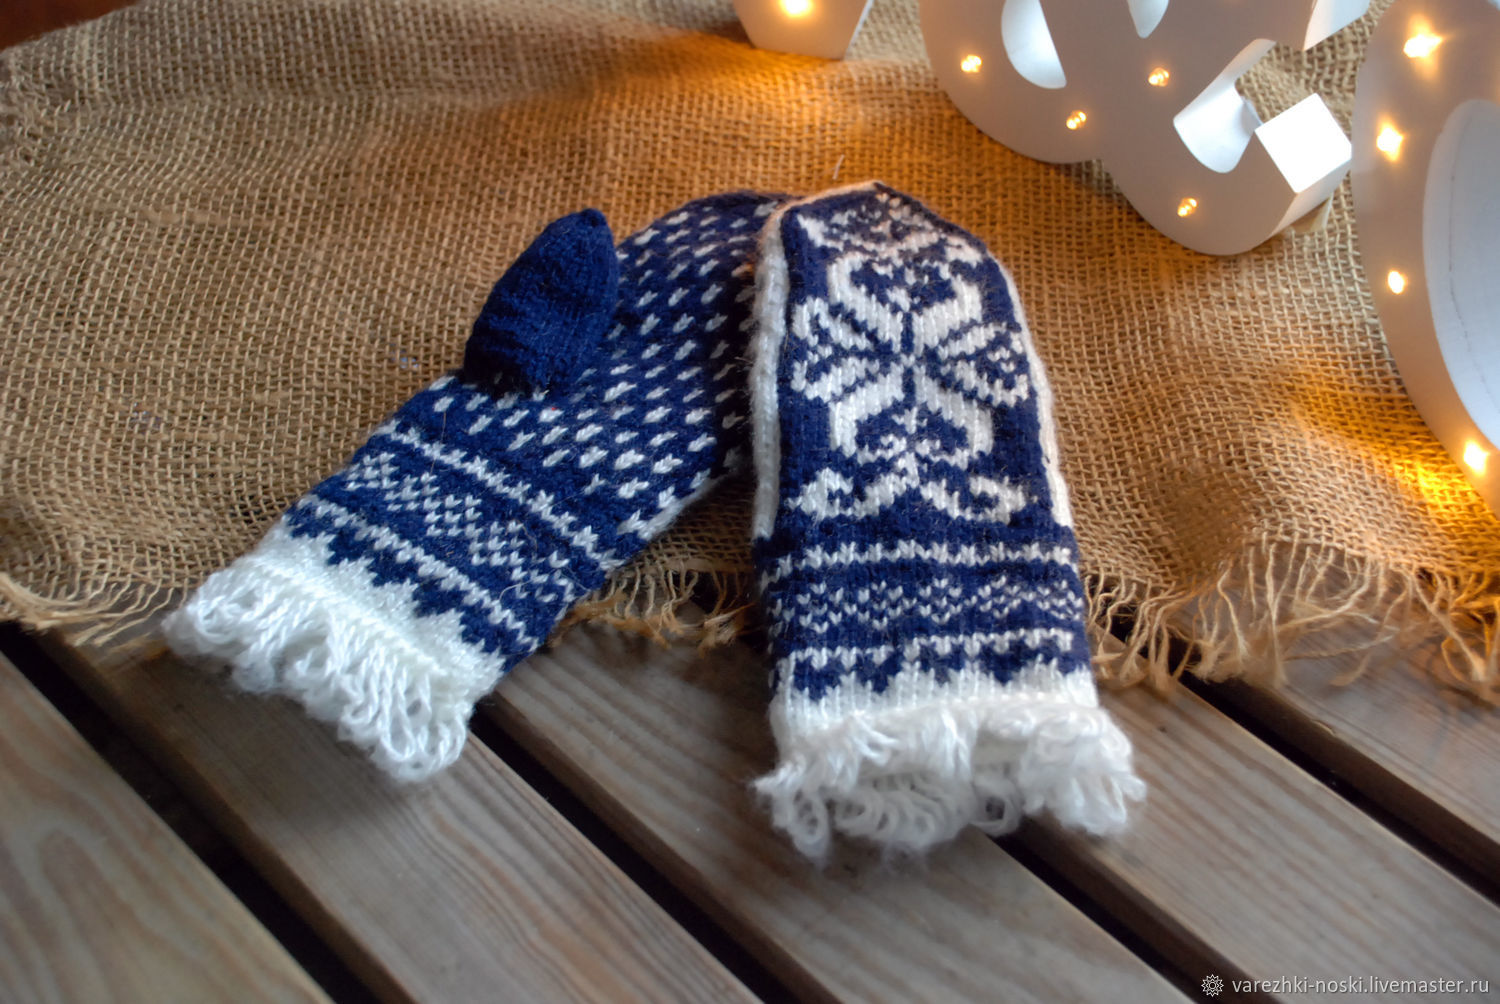 Women's mittens with ornament and fringe blue and white, Mittens, Moscow,  Фото №1